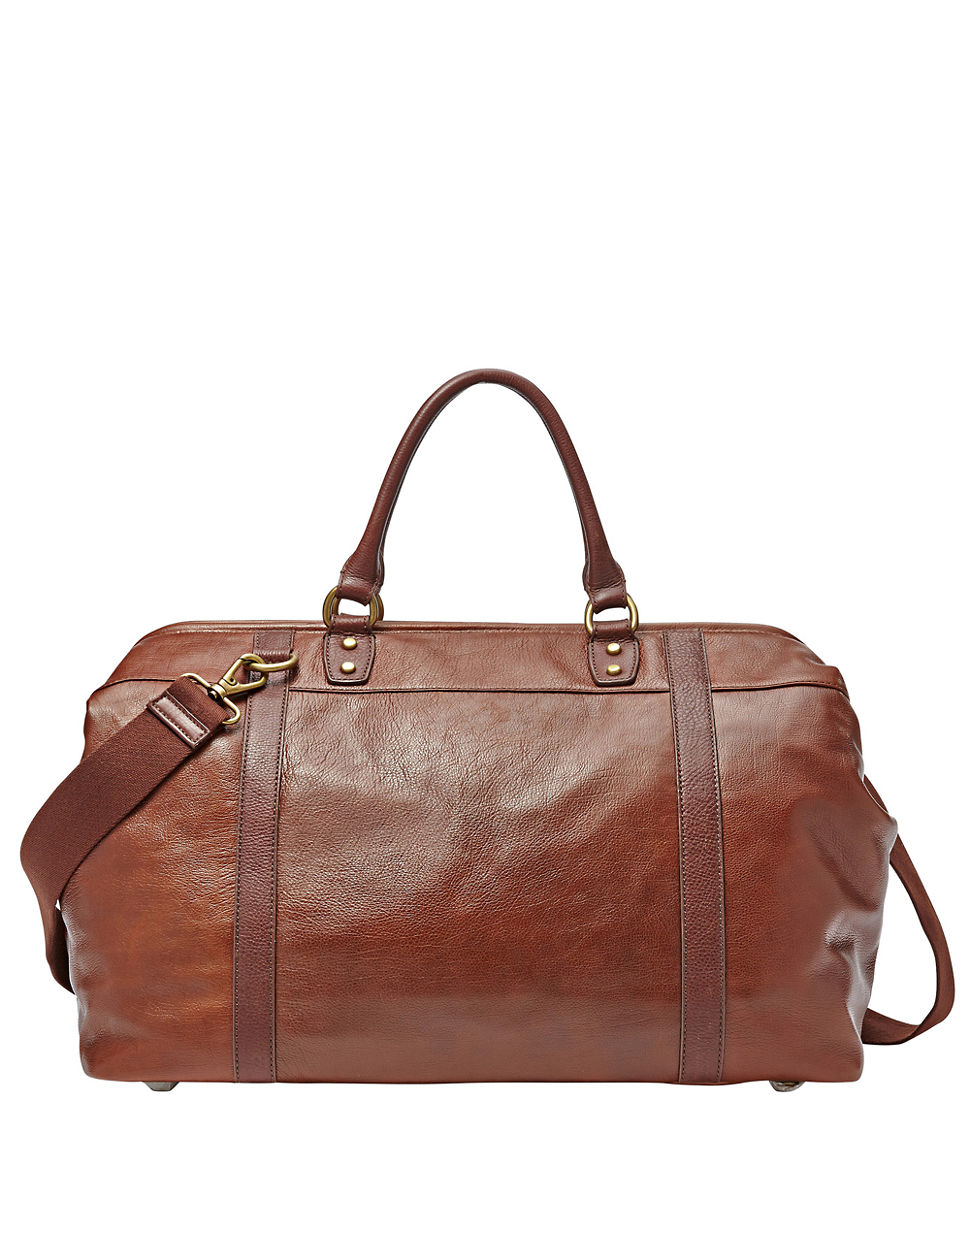 Fossil Leather Framed Duffel Bag In Brown For Men Lyst